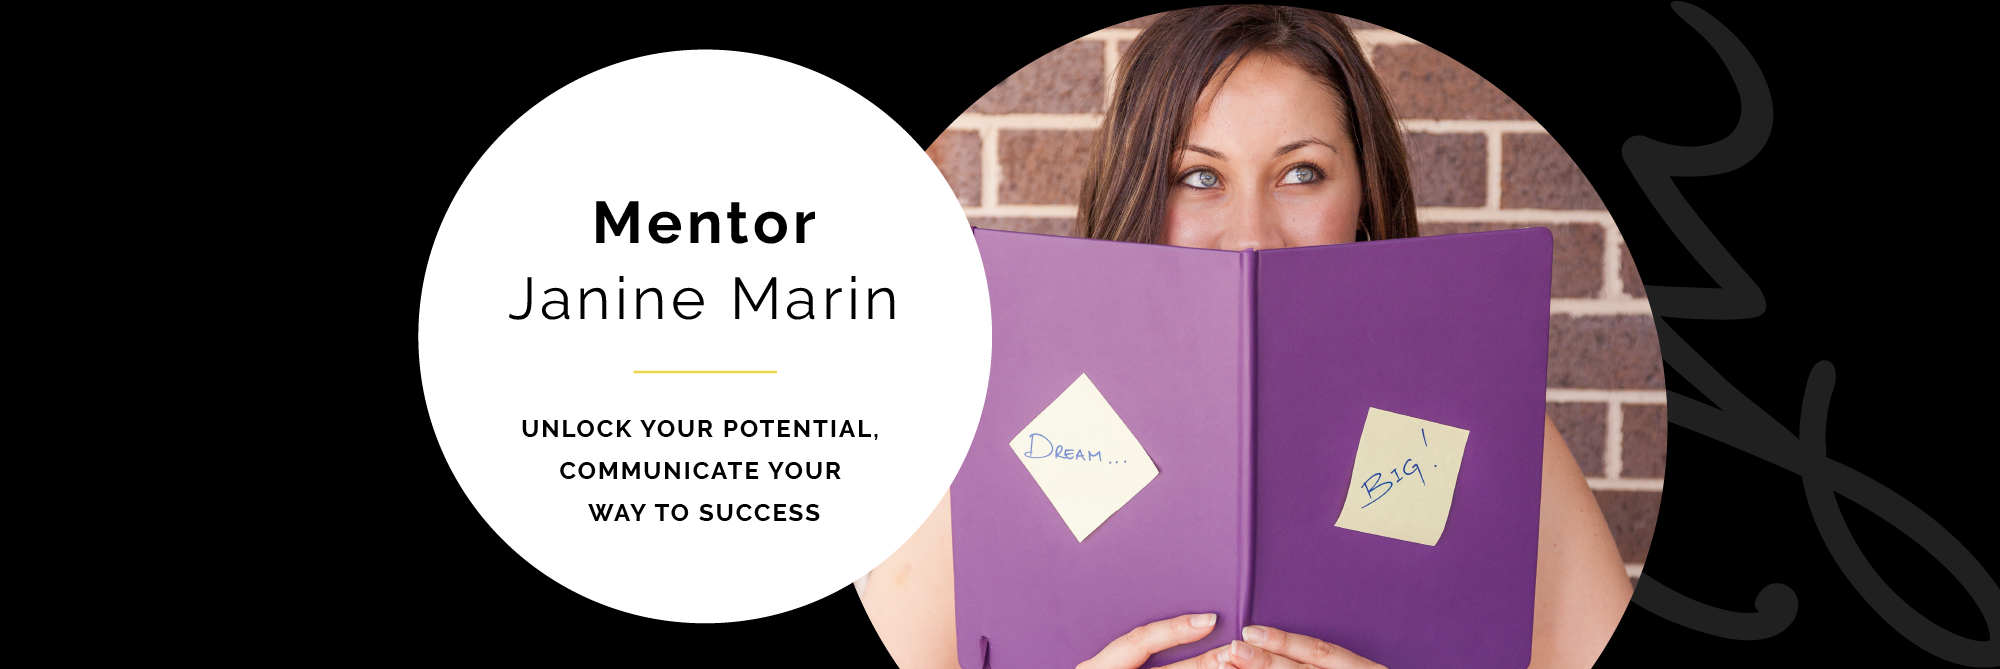 janine-marin-career-business-leadwership-mentor